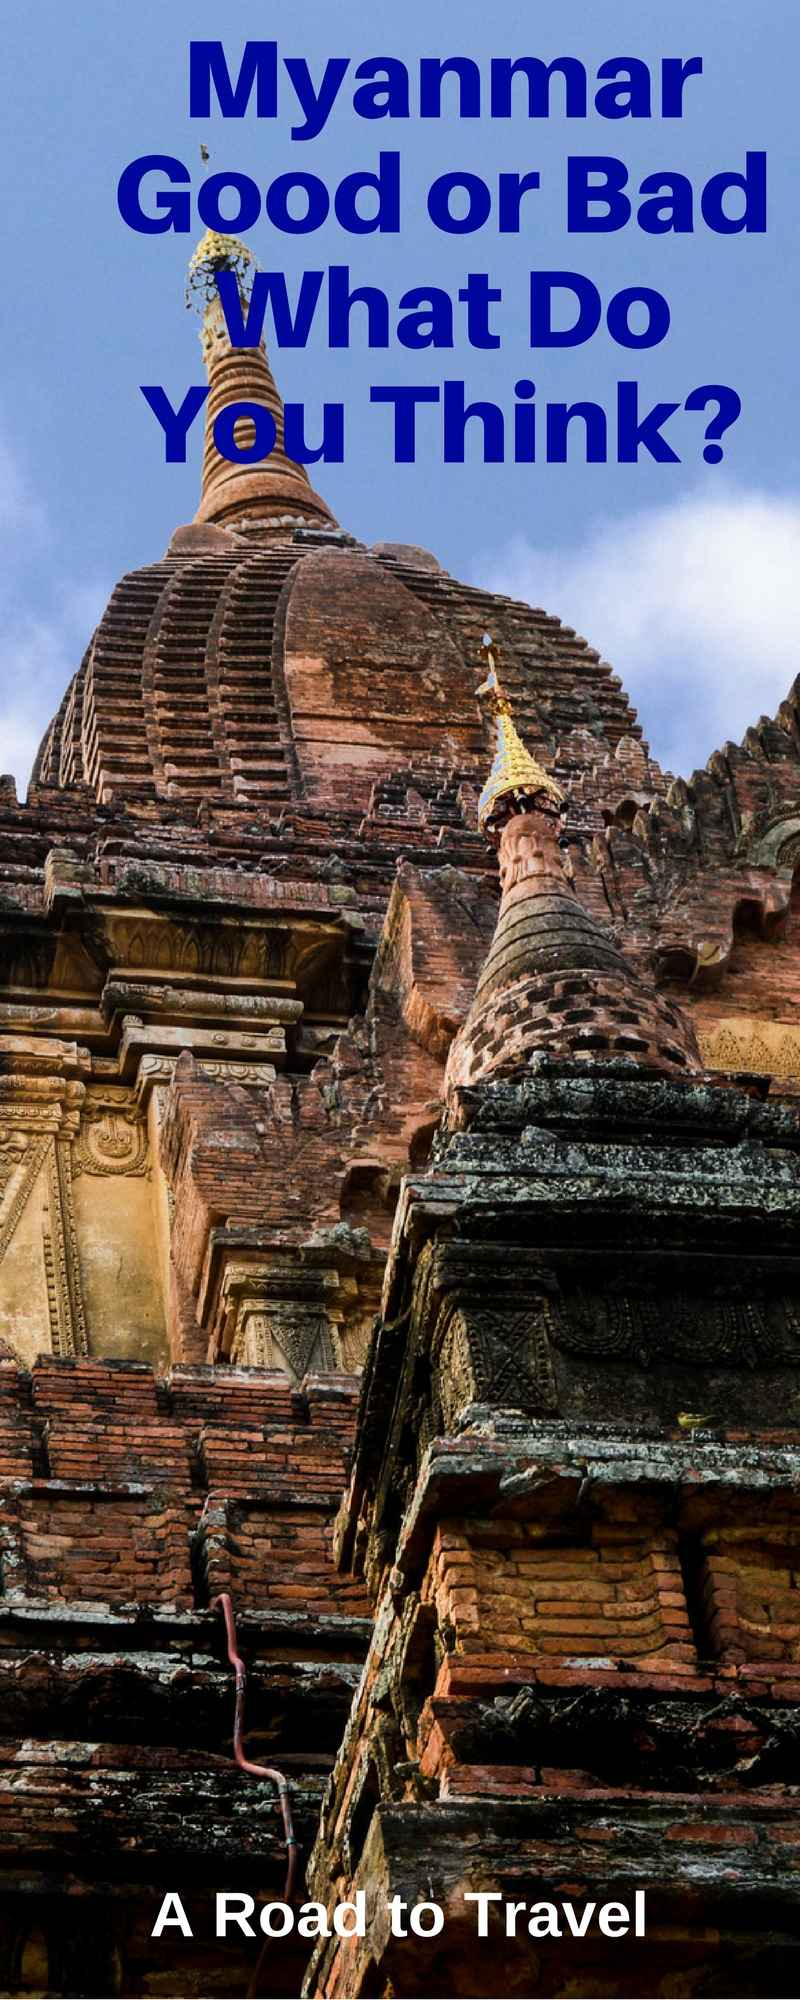 Myanmar: Good or Bad Whats Your Choice | Myanmar: The Good, Bad, and Endearing | Myanmar | Hsipaw | Bagan | SE Asia | SE Asia Packing List | SE Asia Itinerary | SE Asia Packing List | SE Asia Travel | SE Asia Outfits | Travel | ARoadtoTravel.com